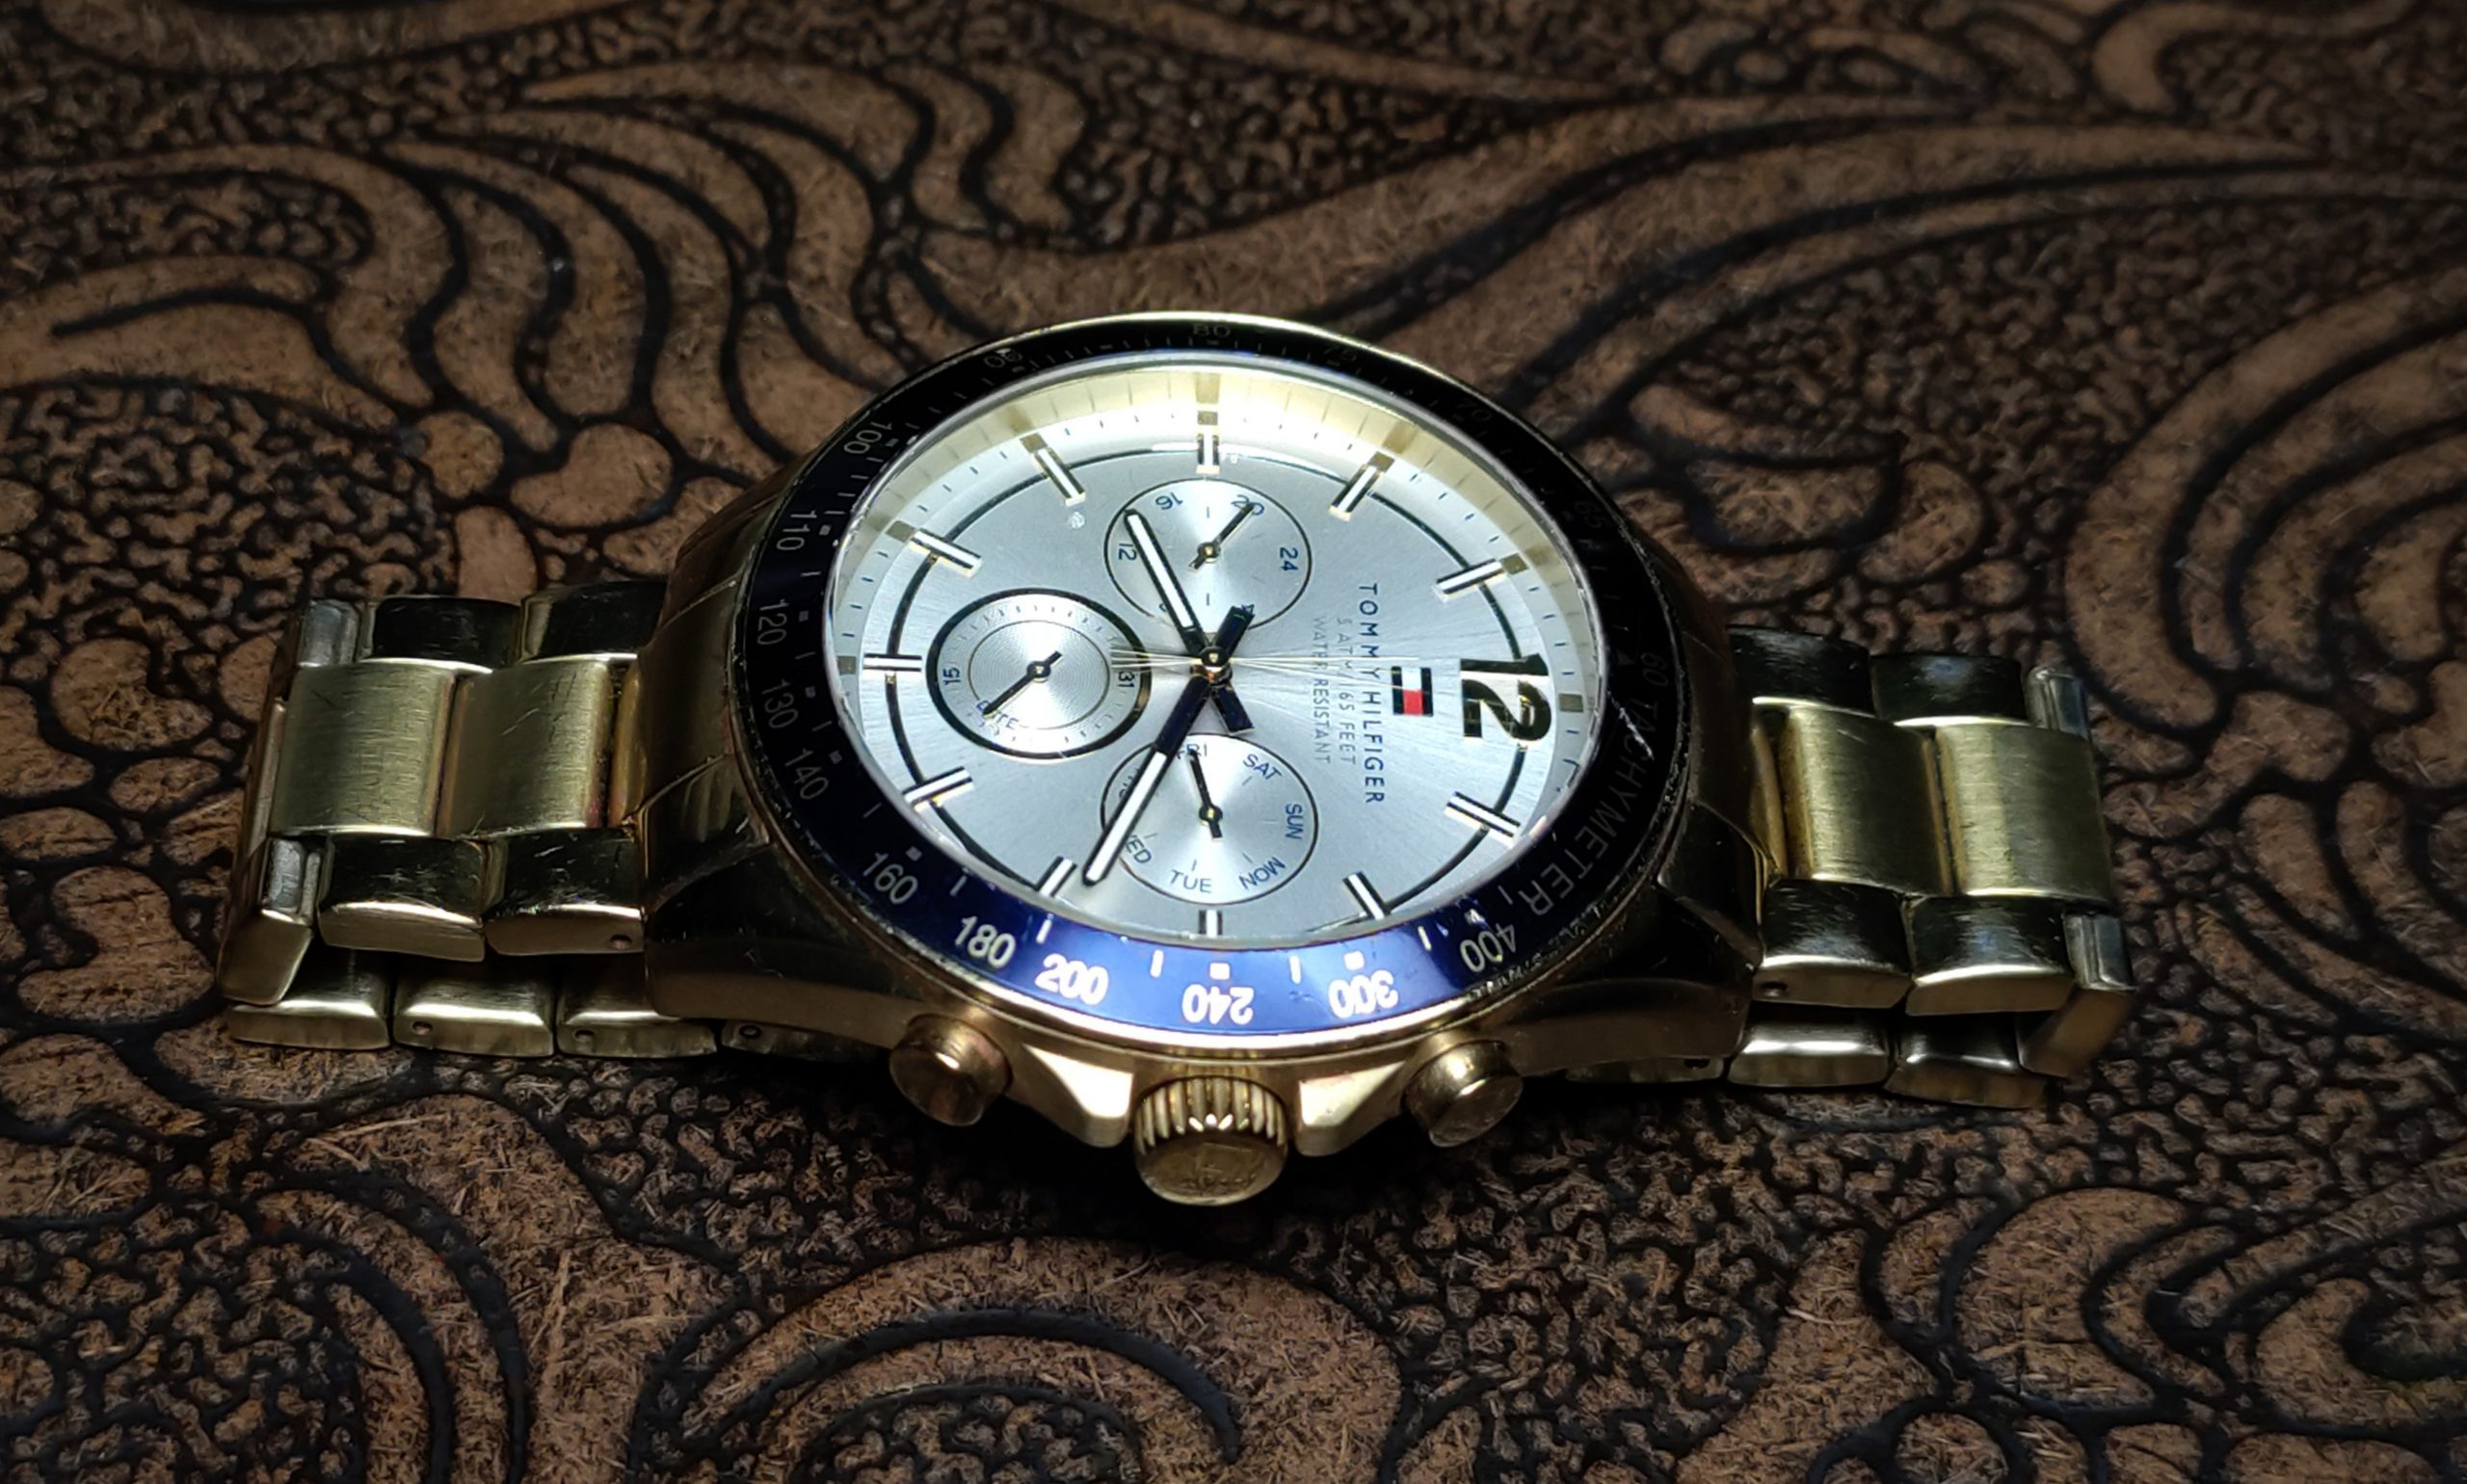 designer watch on table